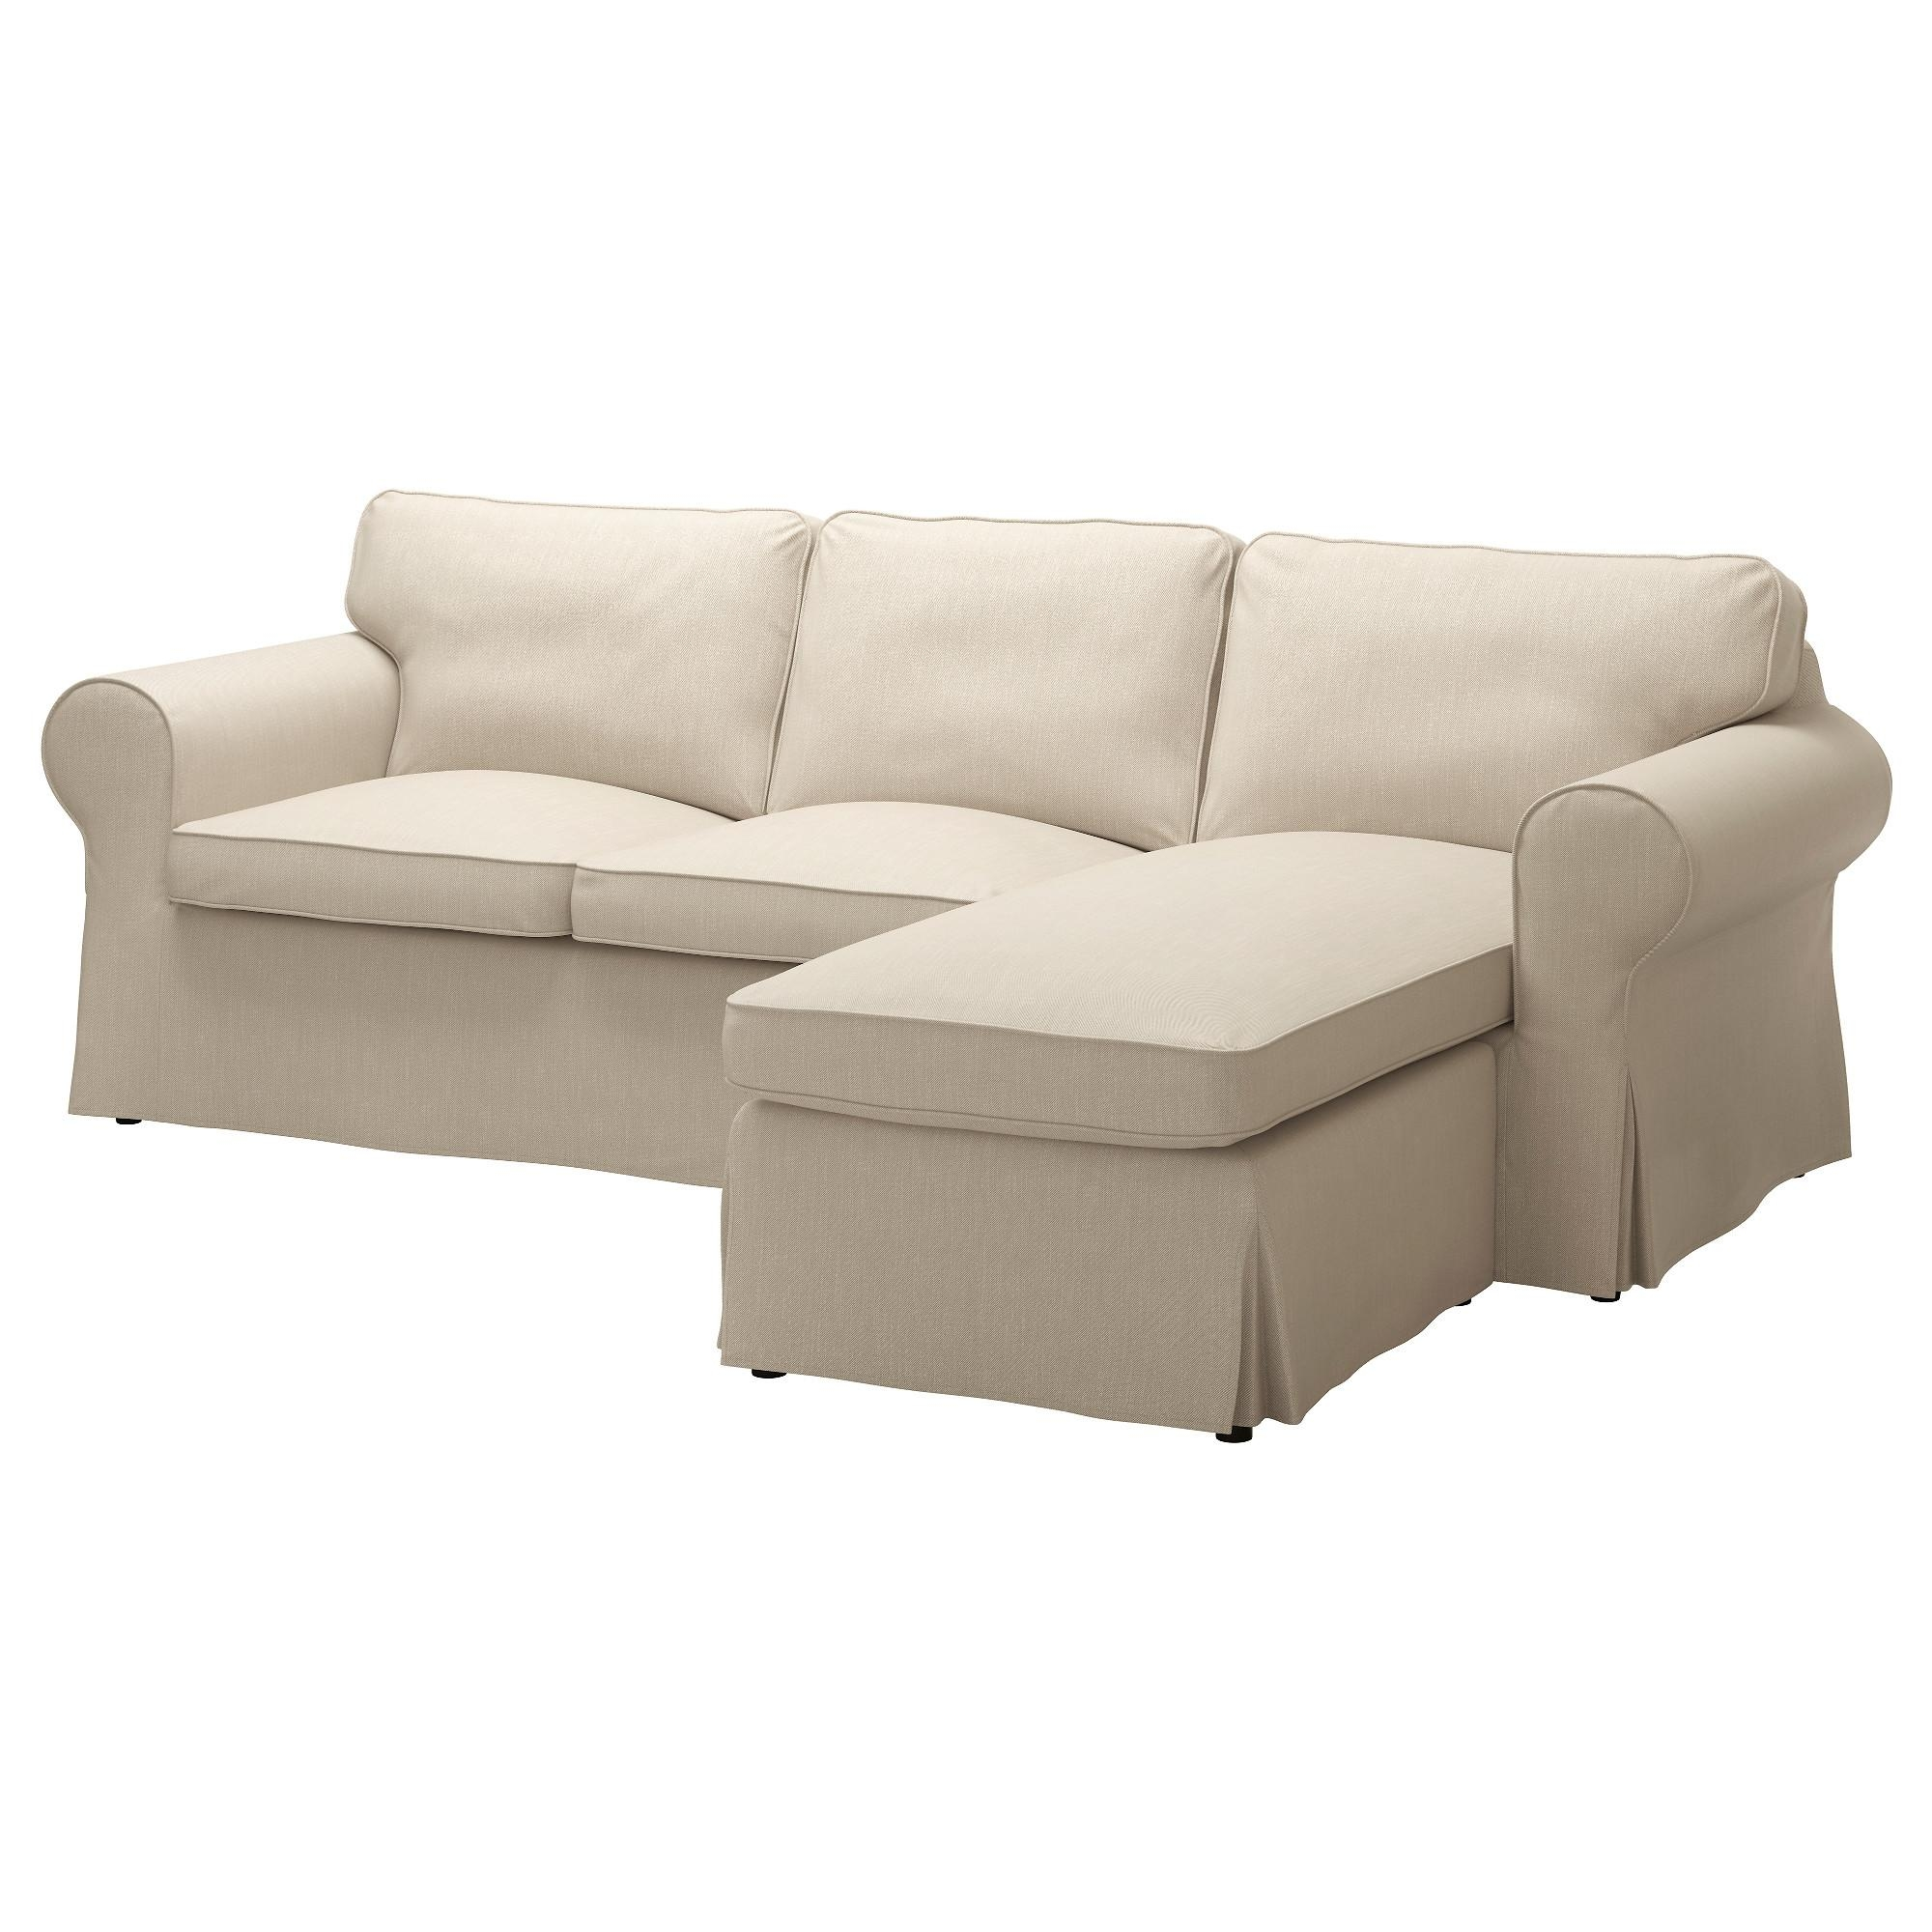 20 photos ikea chaise lounge sofa sofa ideas for Chaise long sofa